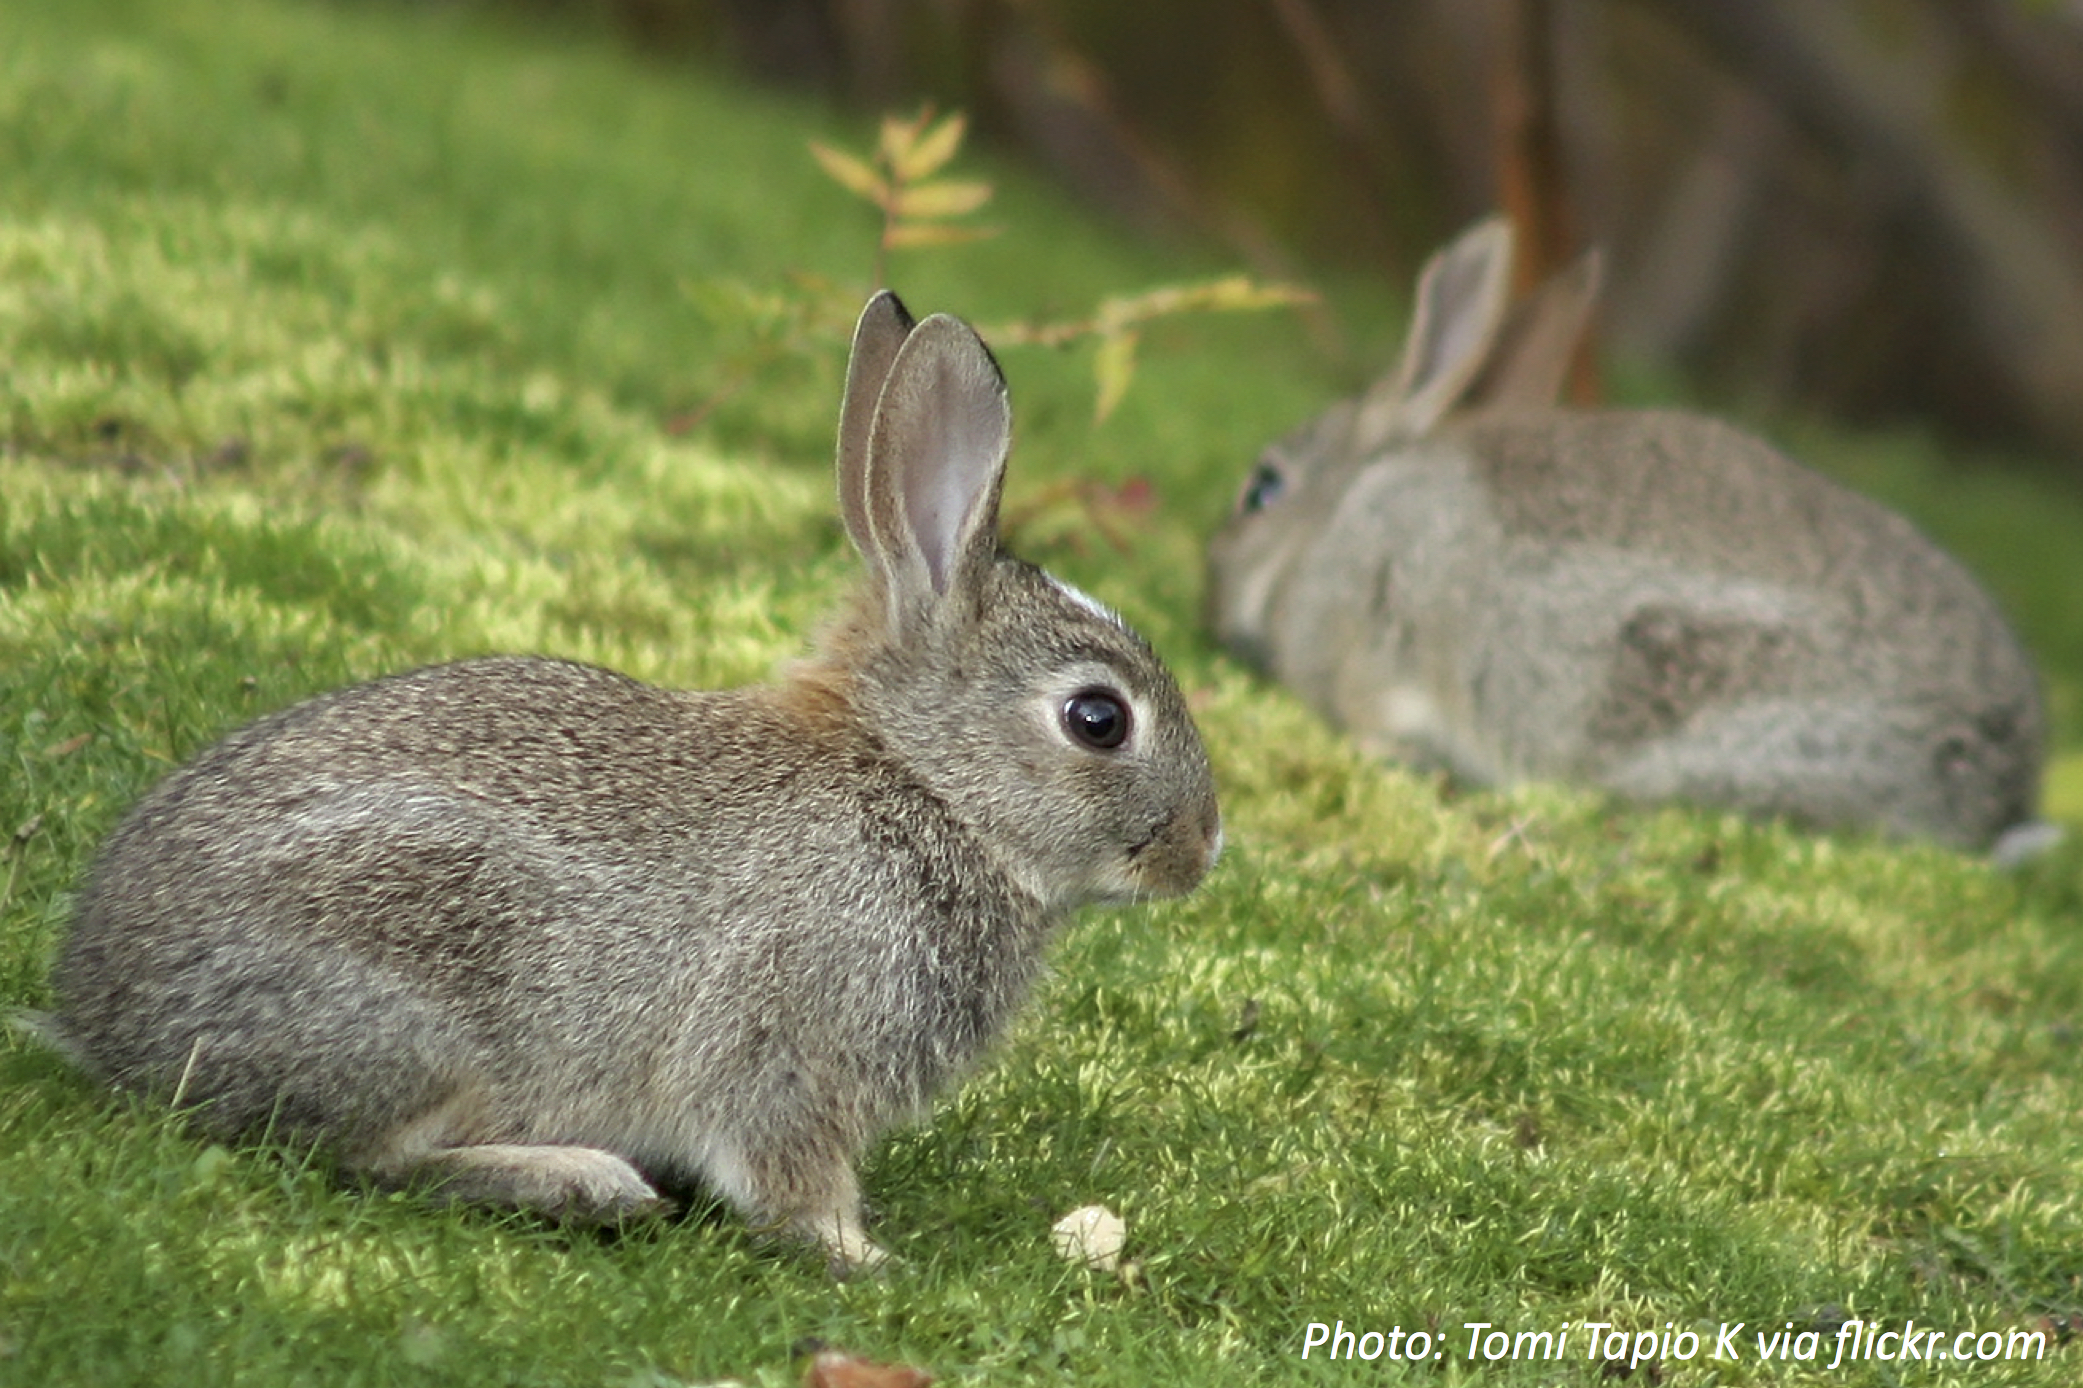 The Bunnies on Your Block